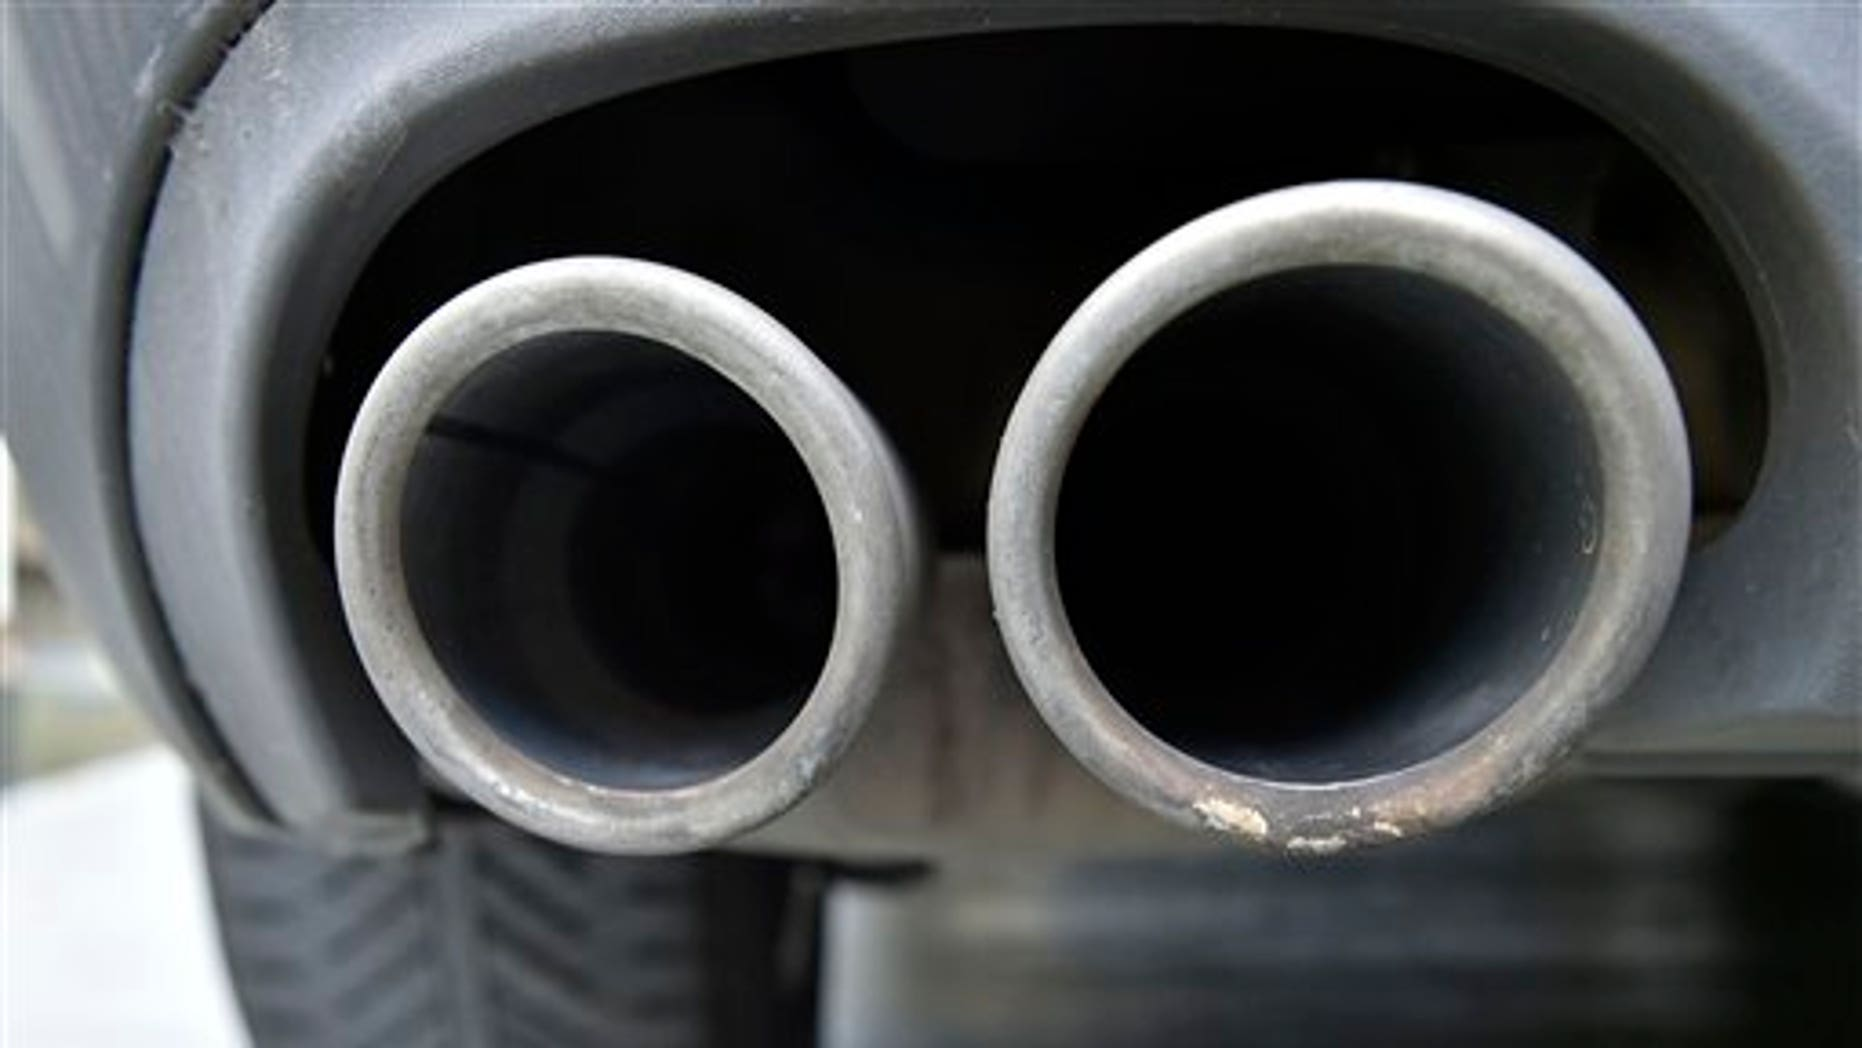 "The exhaust pipes of an up to date Audi car blow out not visible emissions during the engine start in Gelsenkirchen, Germany, Wednesday, Nov. 4, 2015. Volkswagen said Tuesday that an internal investigation has revealed ""unexplained inconsistencies"" in the carbon dioxide emissions from 800,000 of its vehicles. (AP Photo/Martin Meissner)"